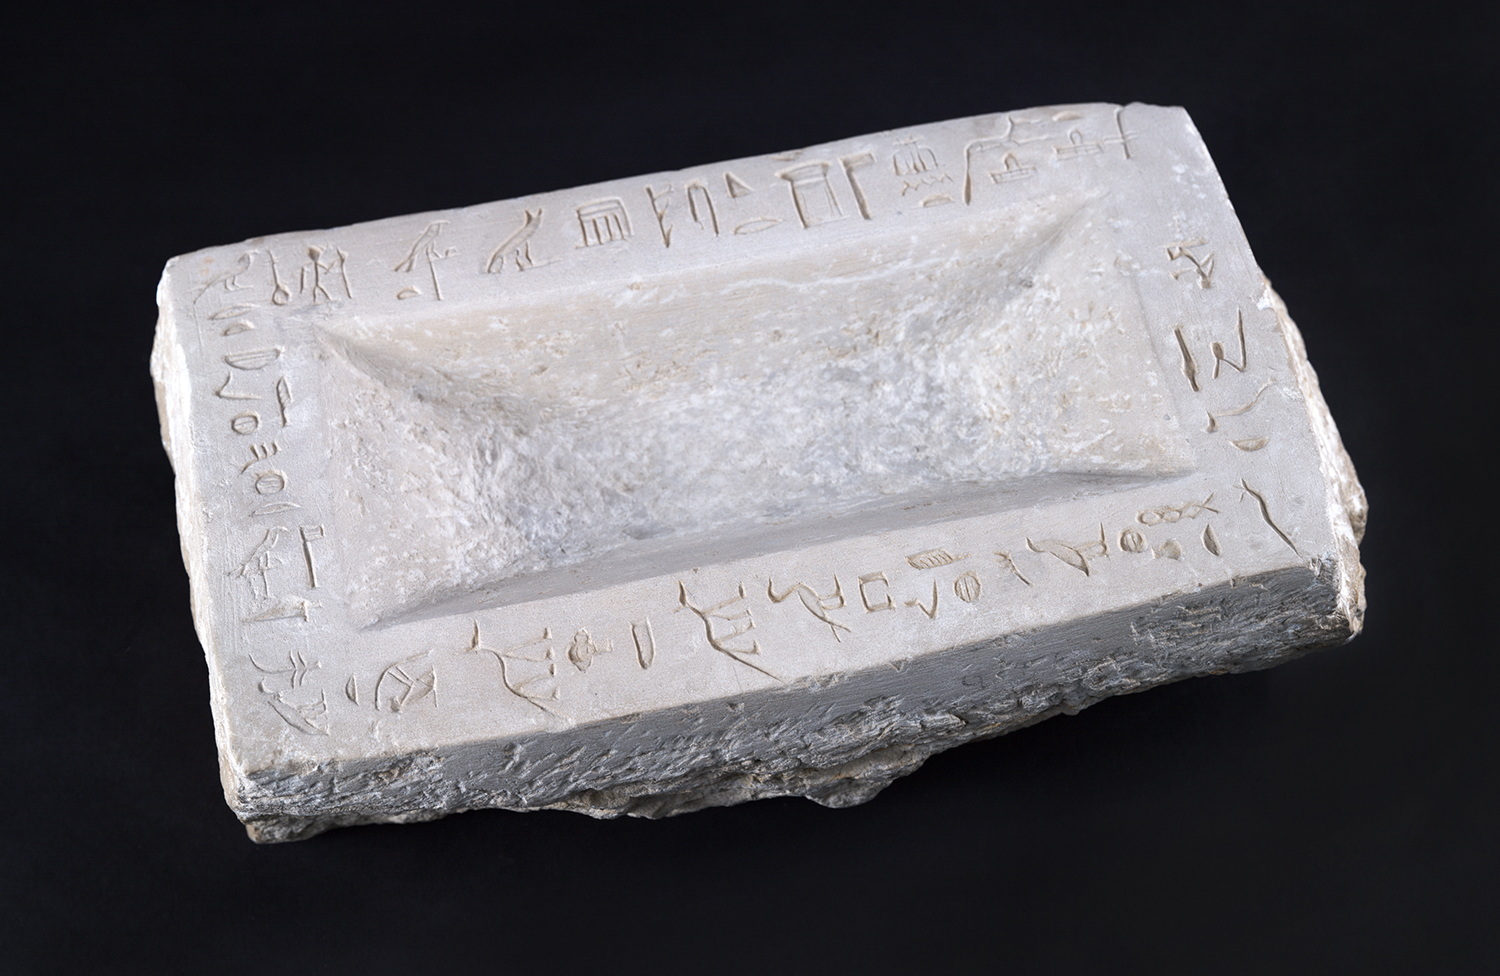 Figure 11: Offering basins were common tomb equipment and were used for liquid offerings. This is an example from an Old Kingdom tomb at Giza. Its rim is decorated with an offering prayer. Photo courtesy of the University of Pennsylvania Museum of Archaeology and Anthropology [UPMAA E13524].